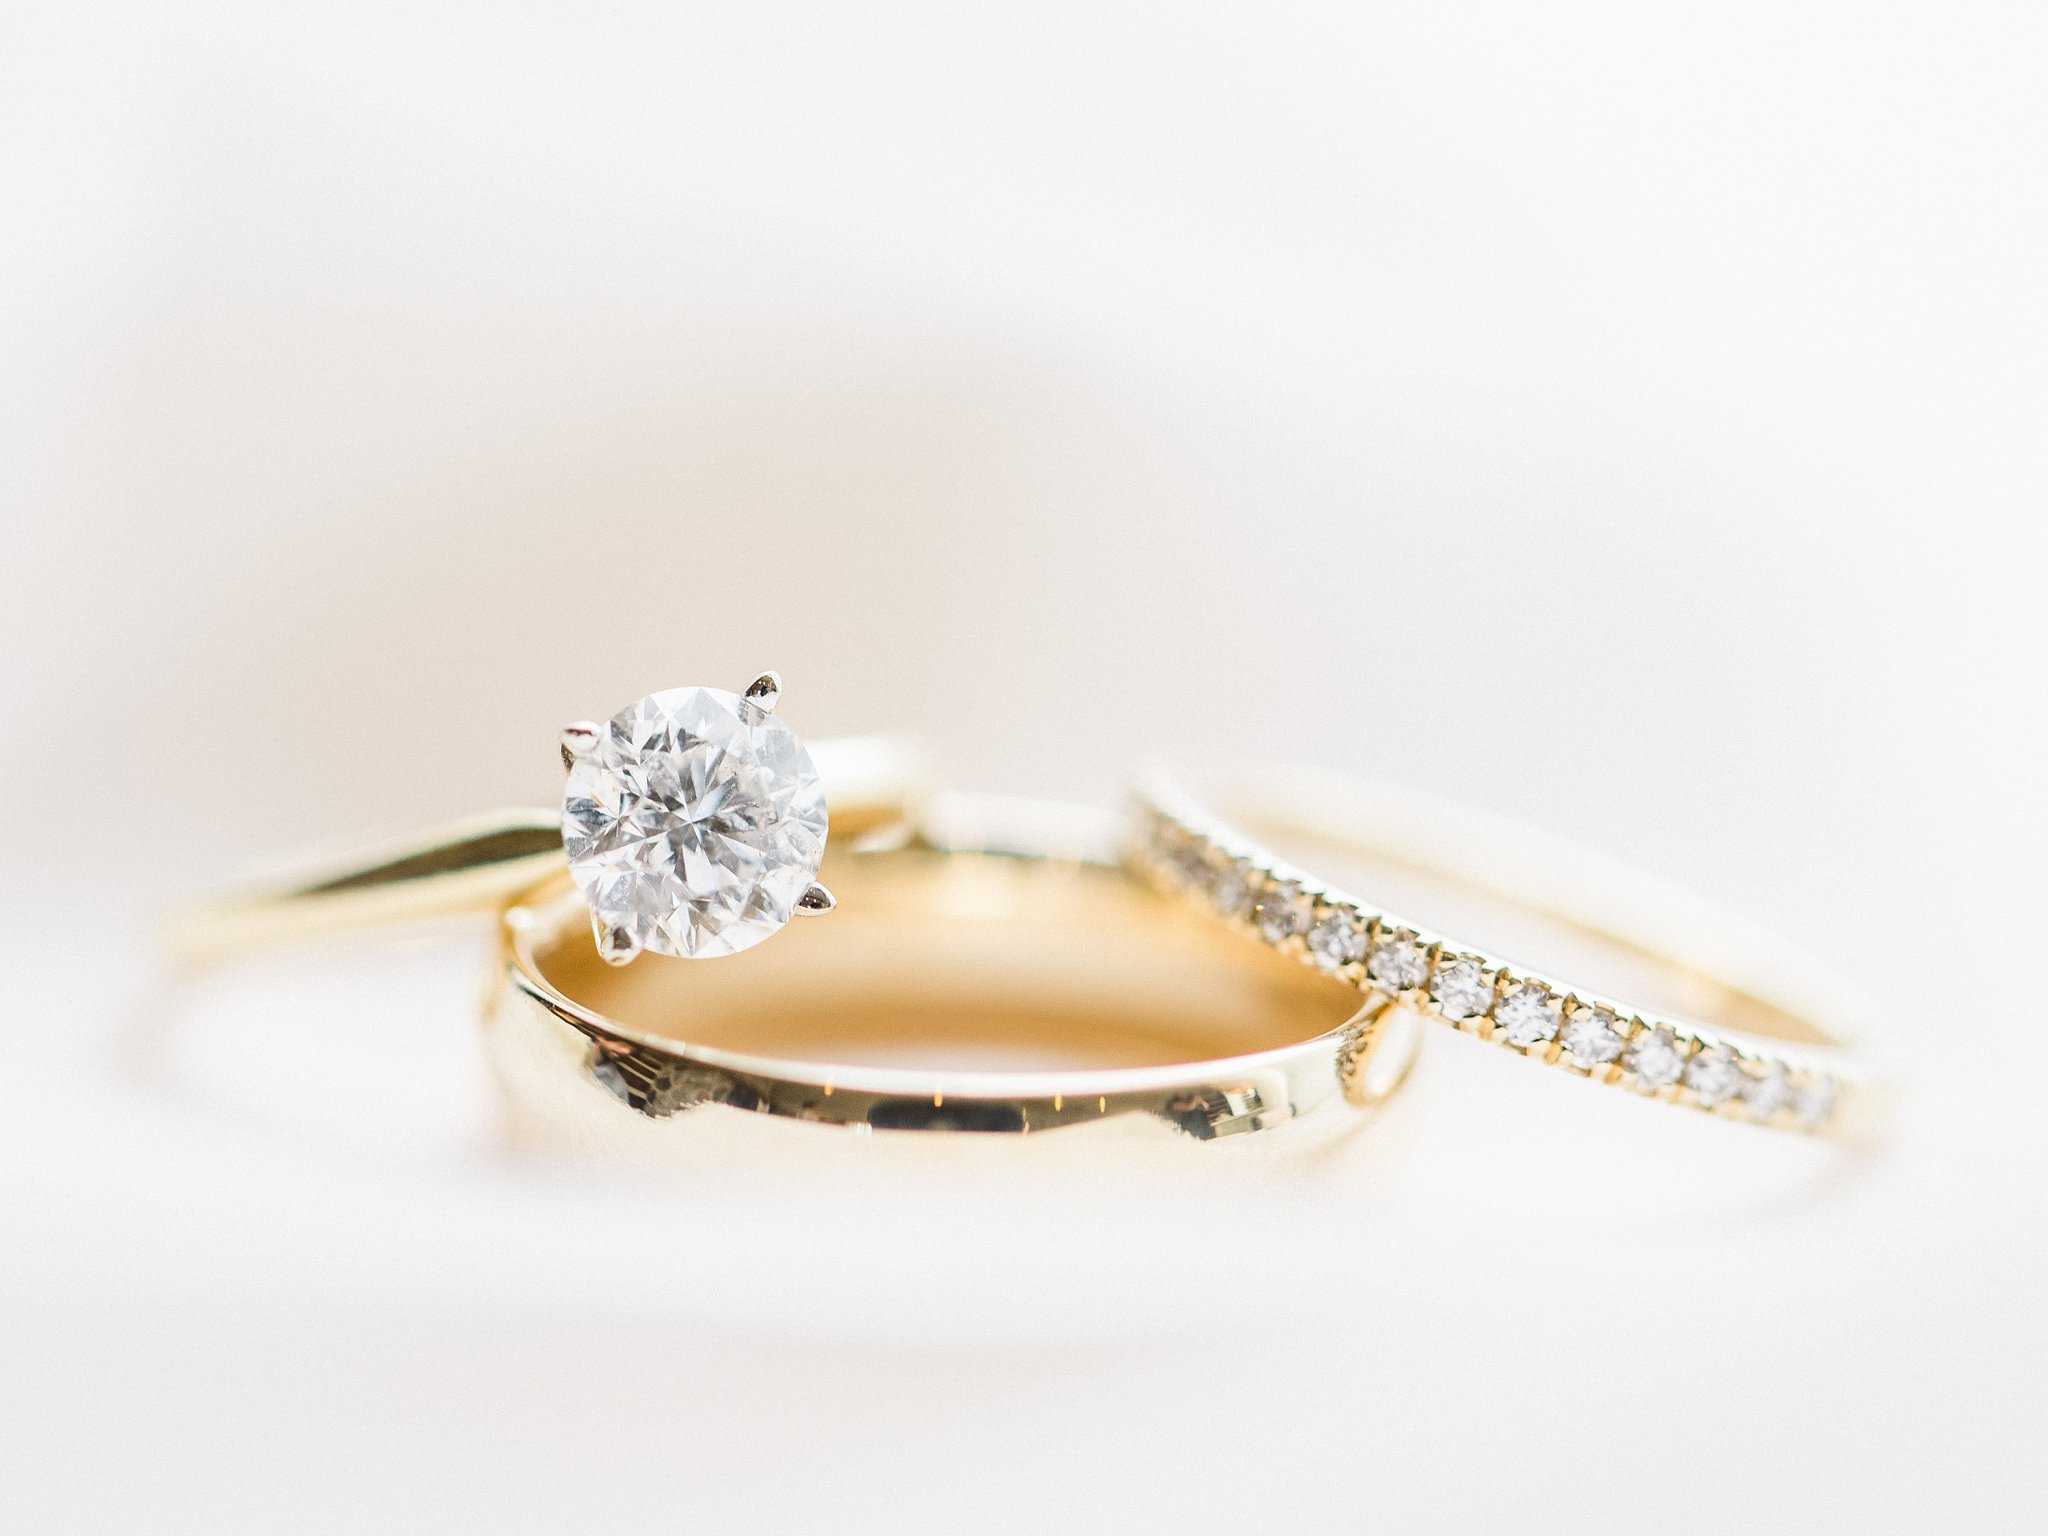 Diamond engagement ring yellow gold band married at Stonefields, Amy Pinder Photography